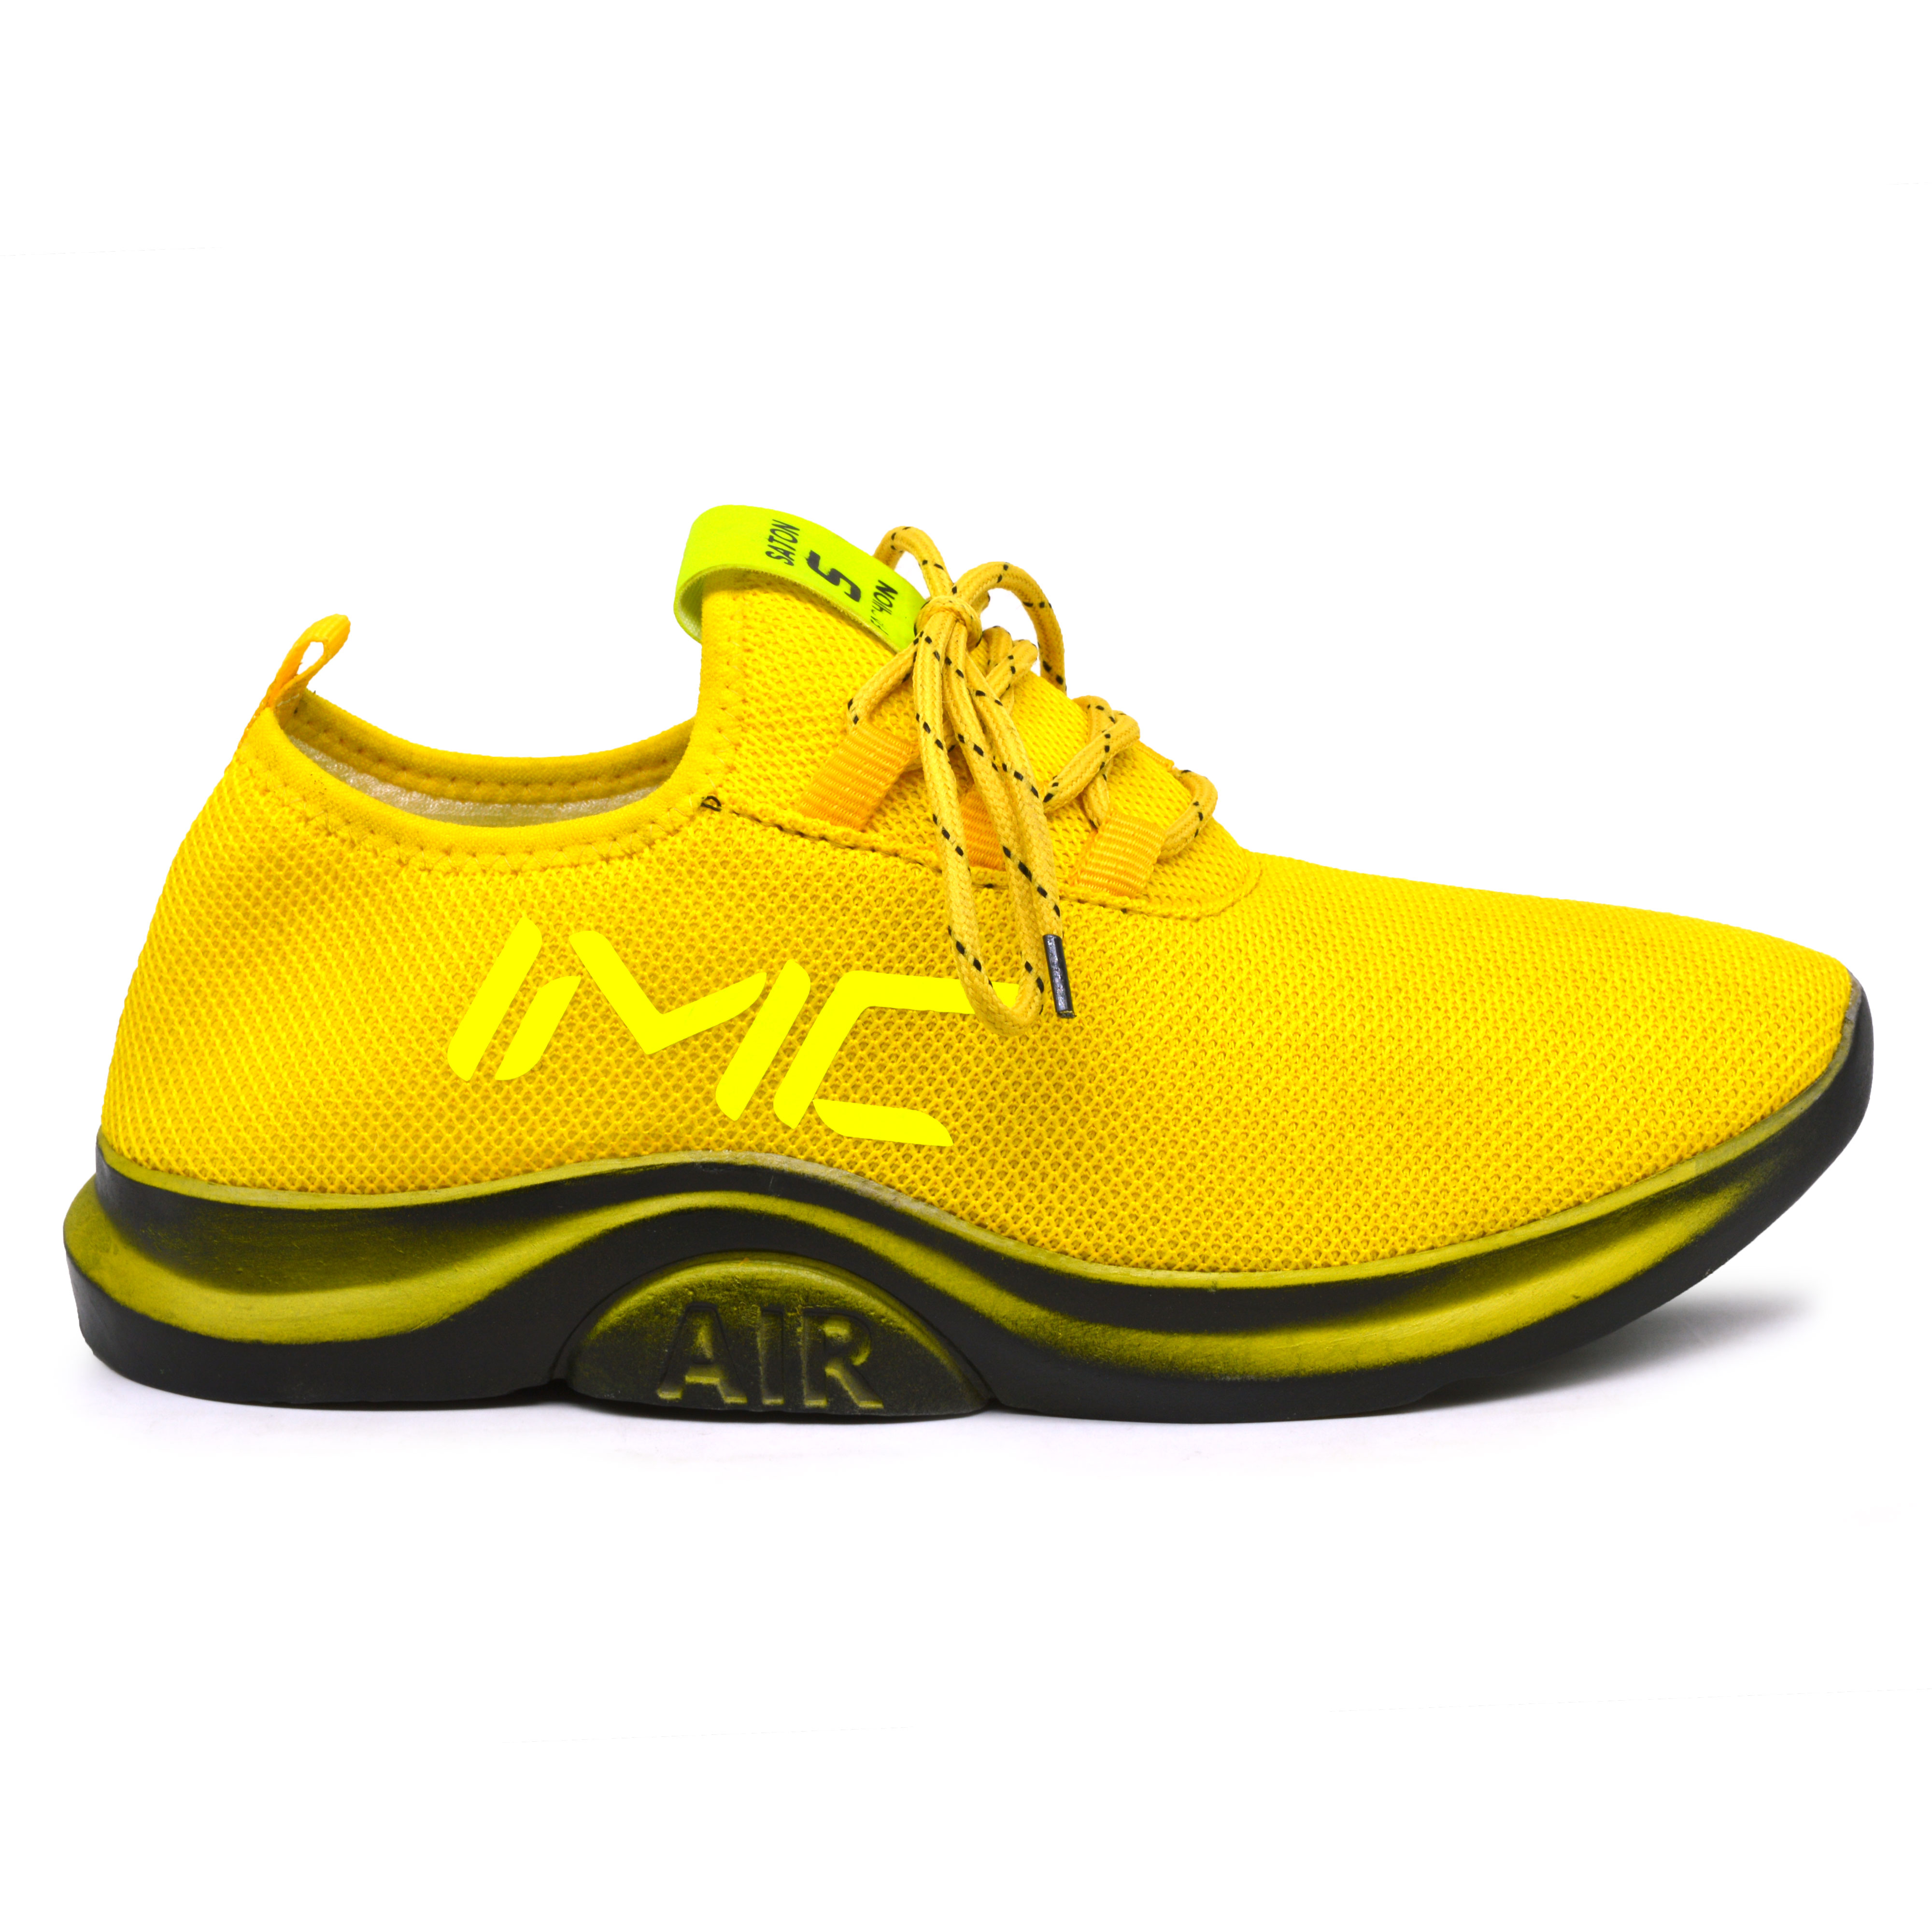 IMCOLUS400A.356_YELLOW RUNNING & EXERCISE SPORT SHOES FOR MEN'S IMCOLUS400A.356_YLW (YELLOW, 7-10, 4 PAIR)